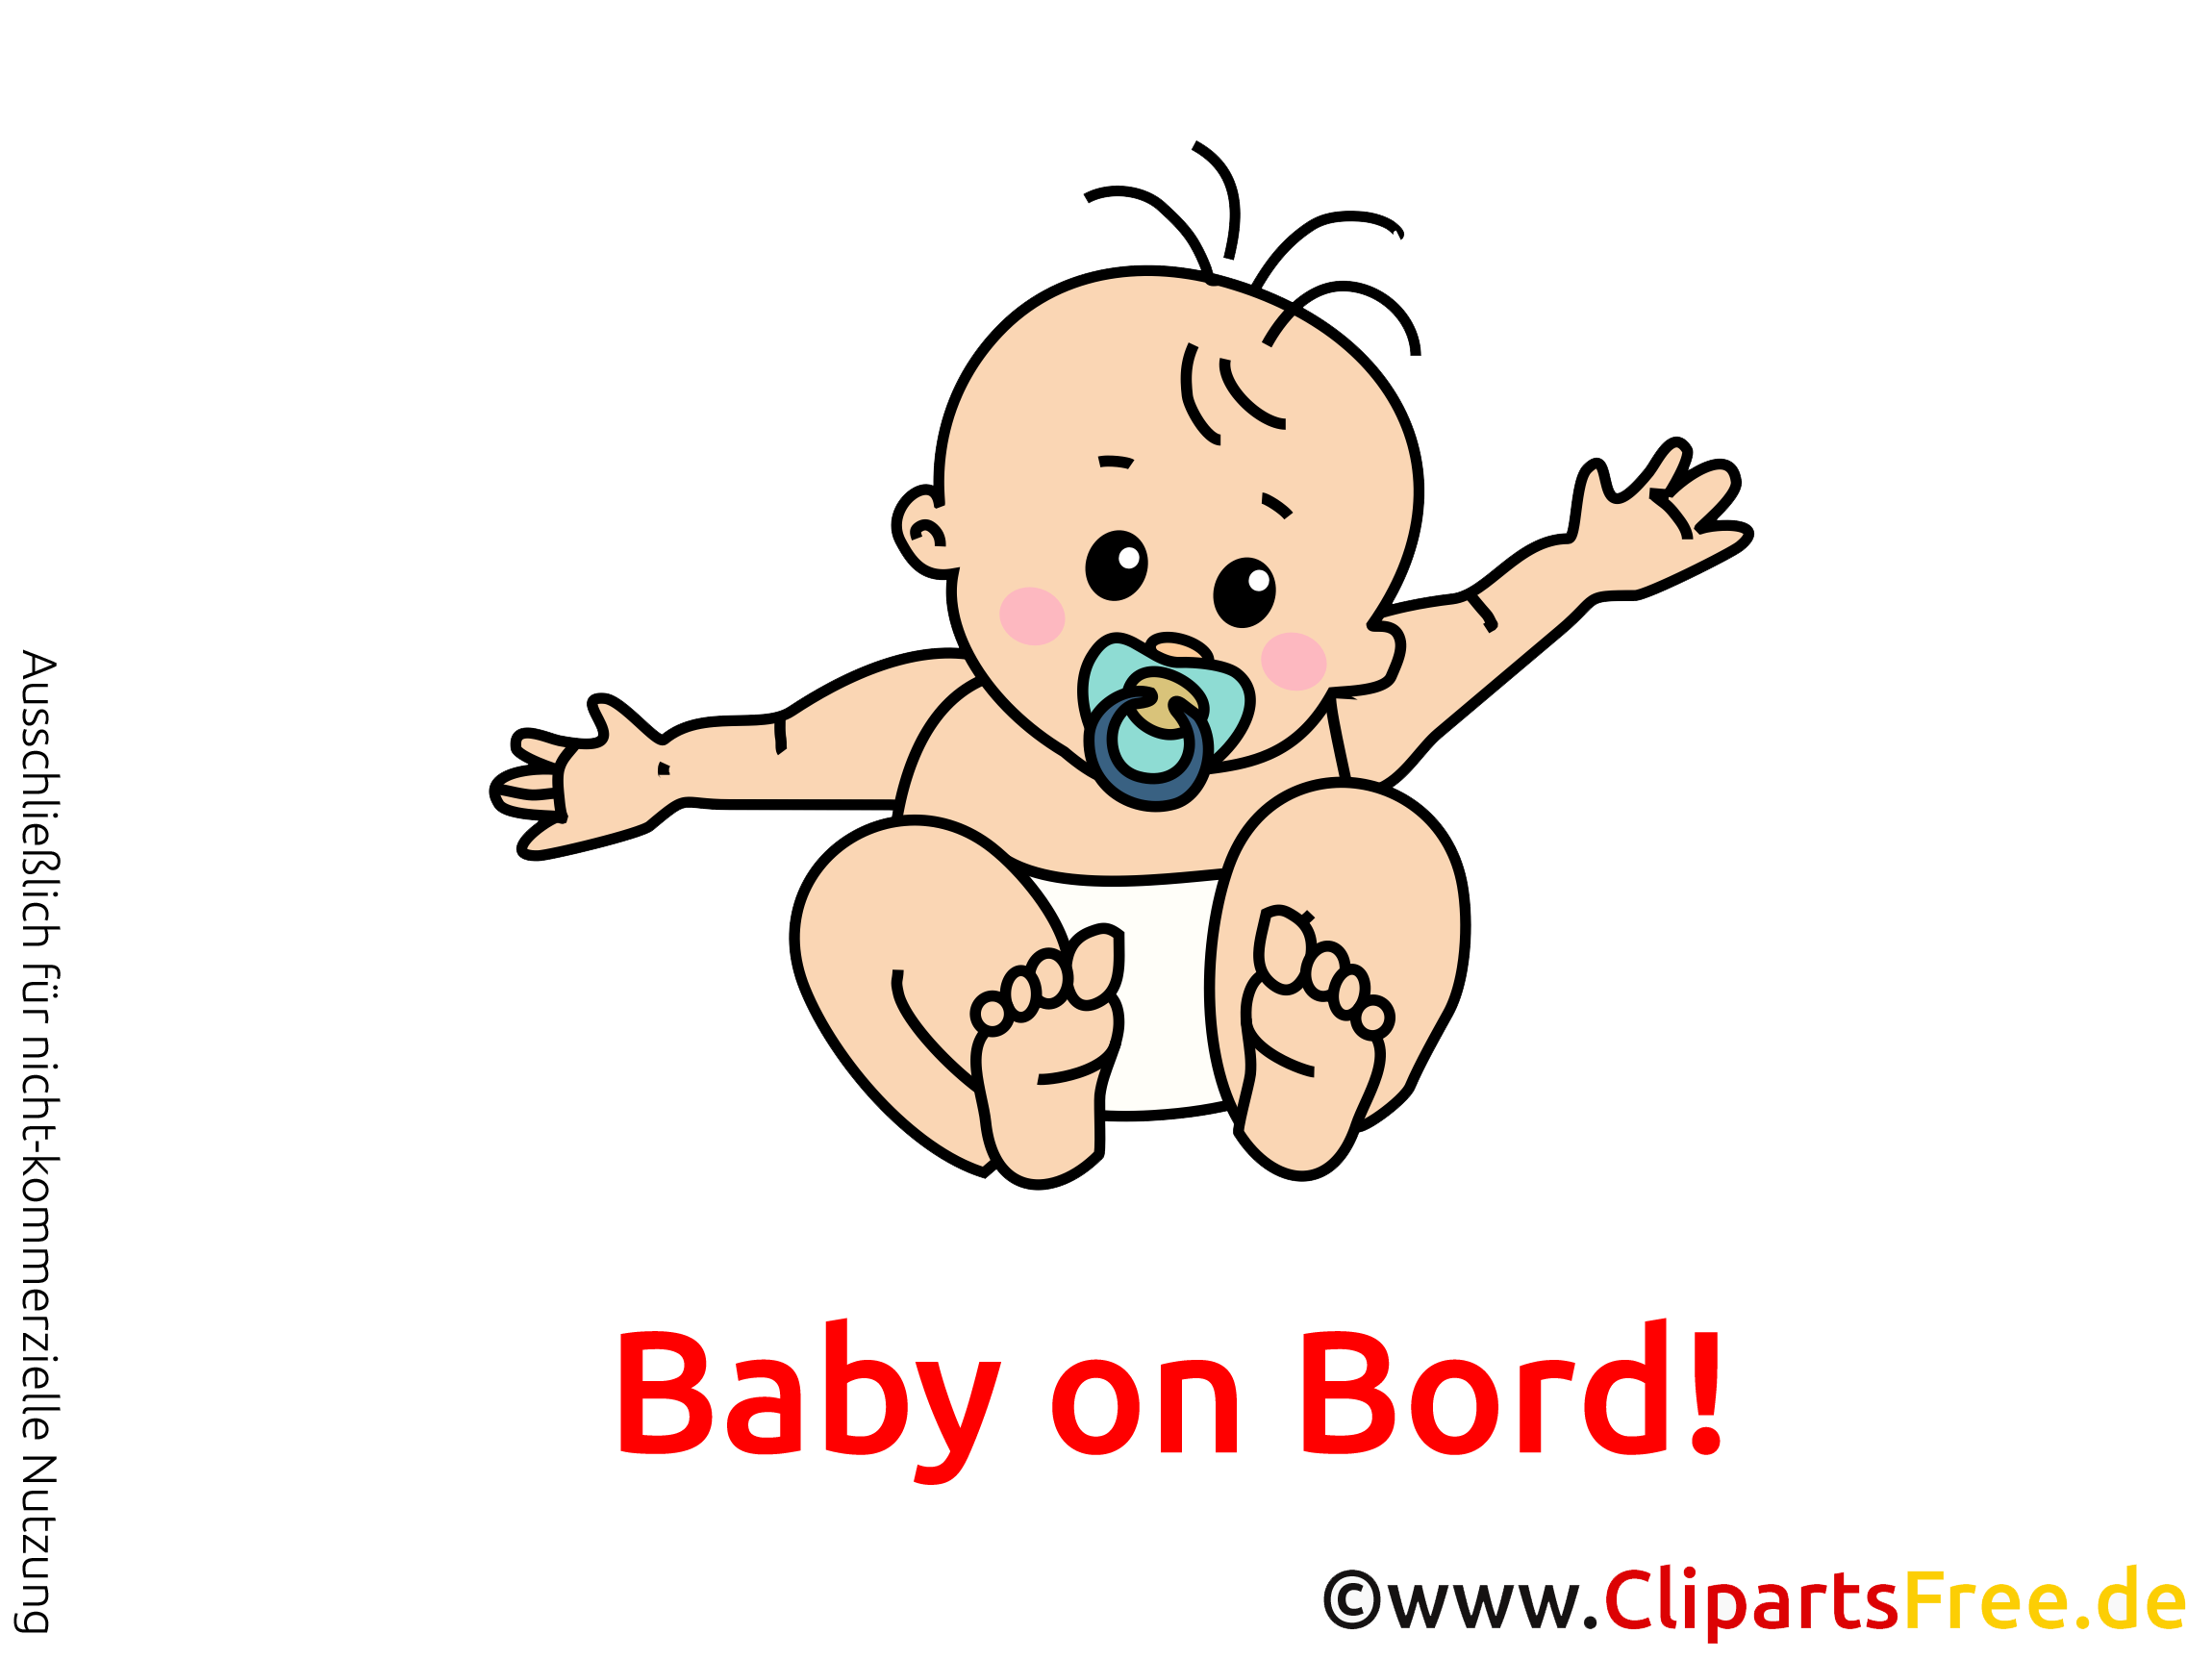 clipart baby on board - photo #48